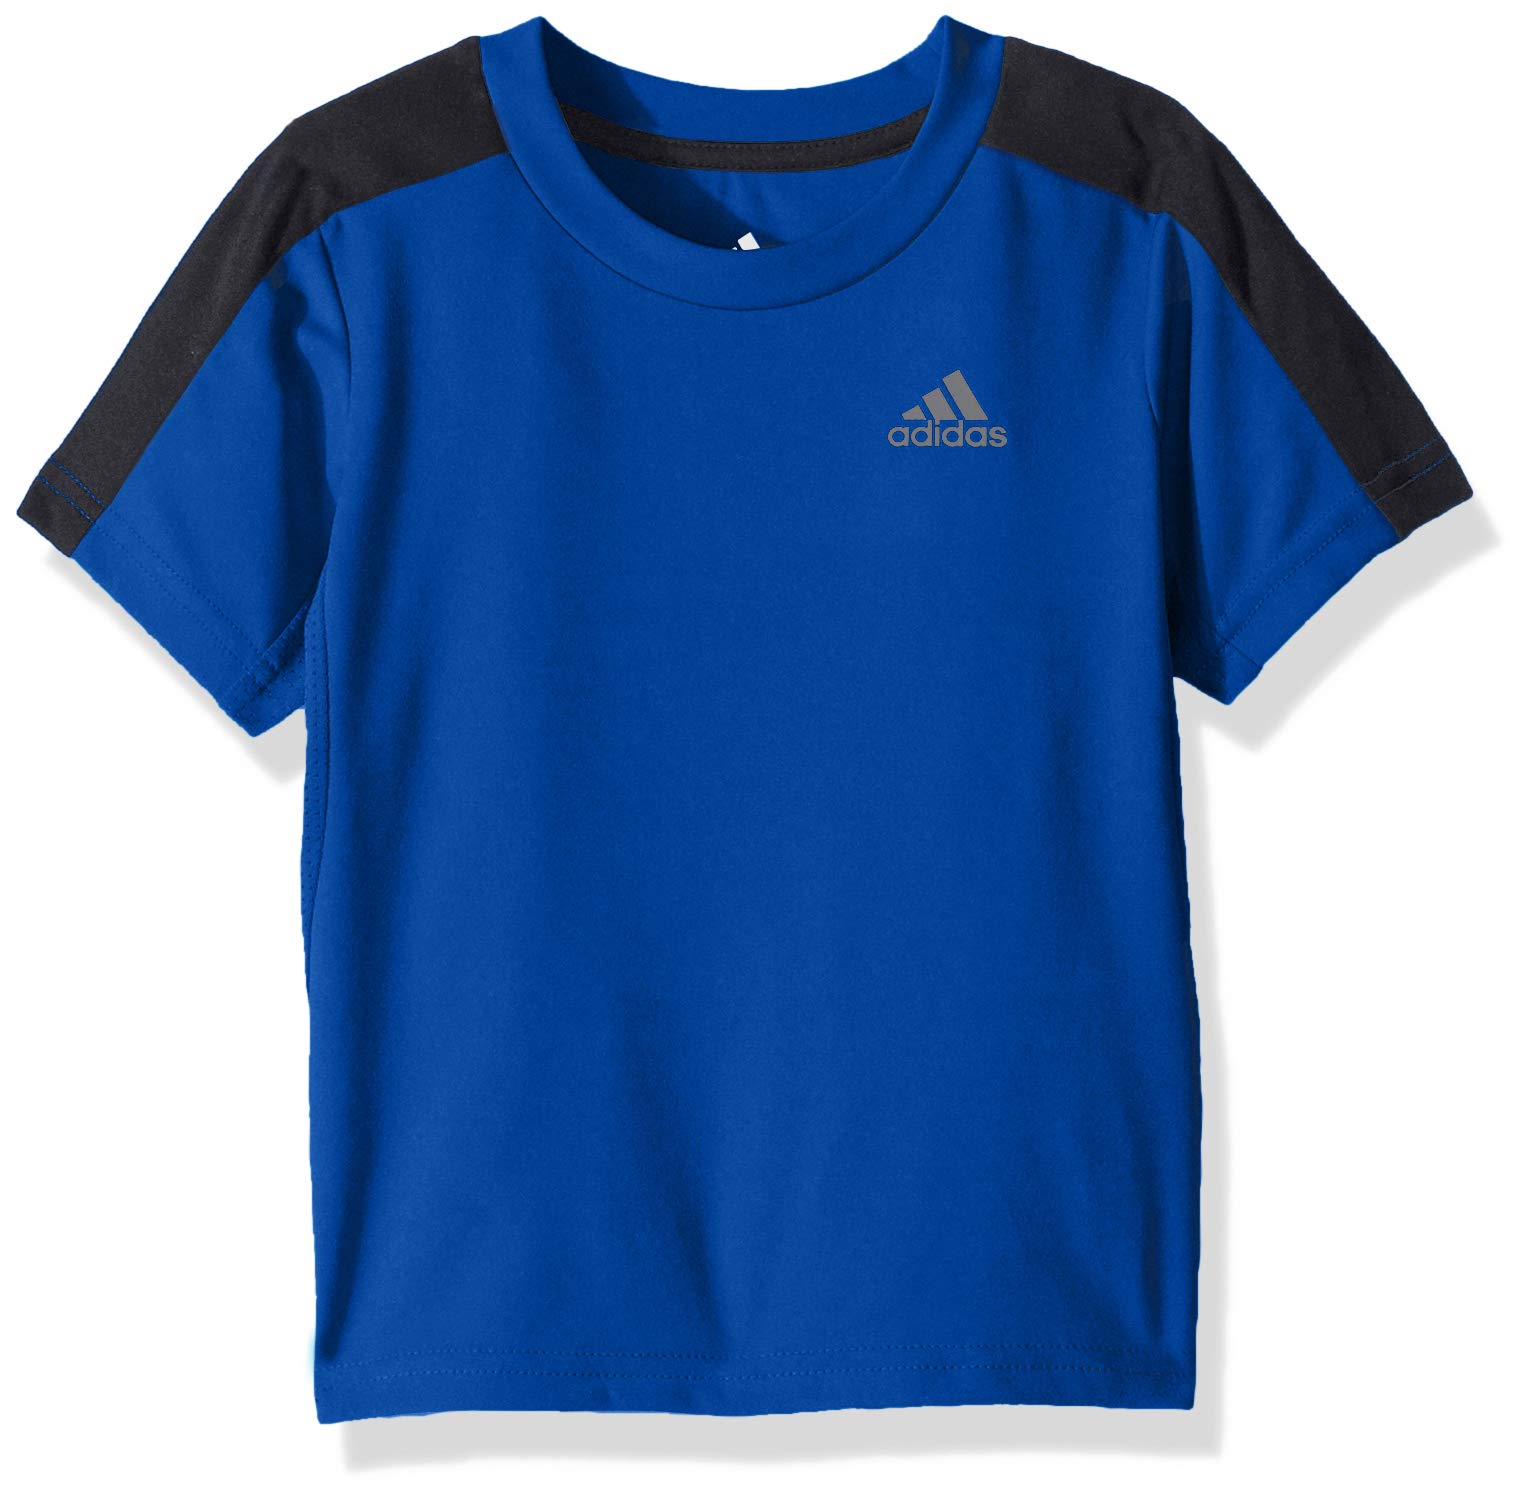 adidas Boys' Big Short Sleeve Logo Tee Shirt, Training a Dark Royal, L (14/16)